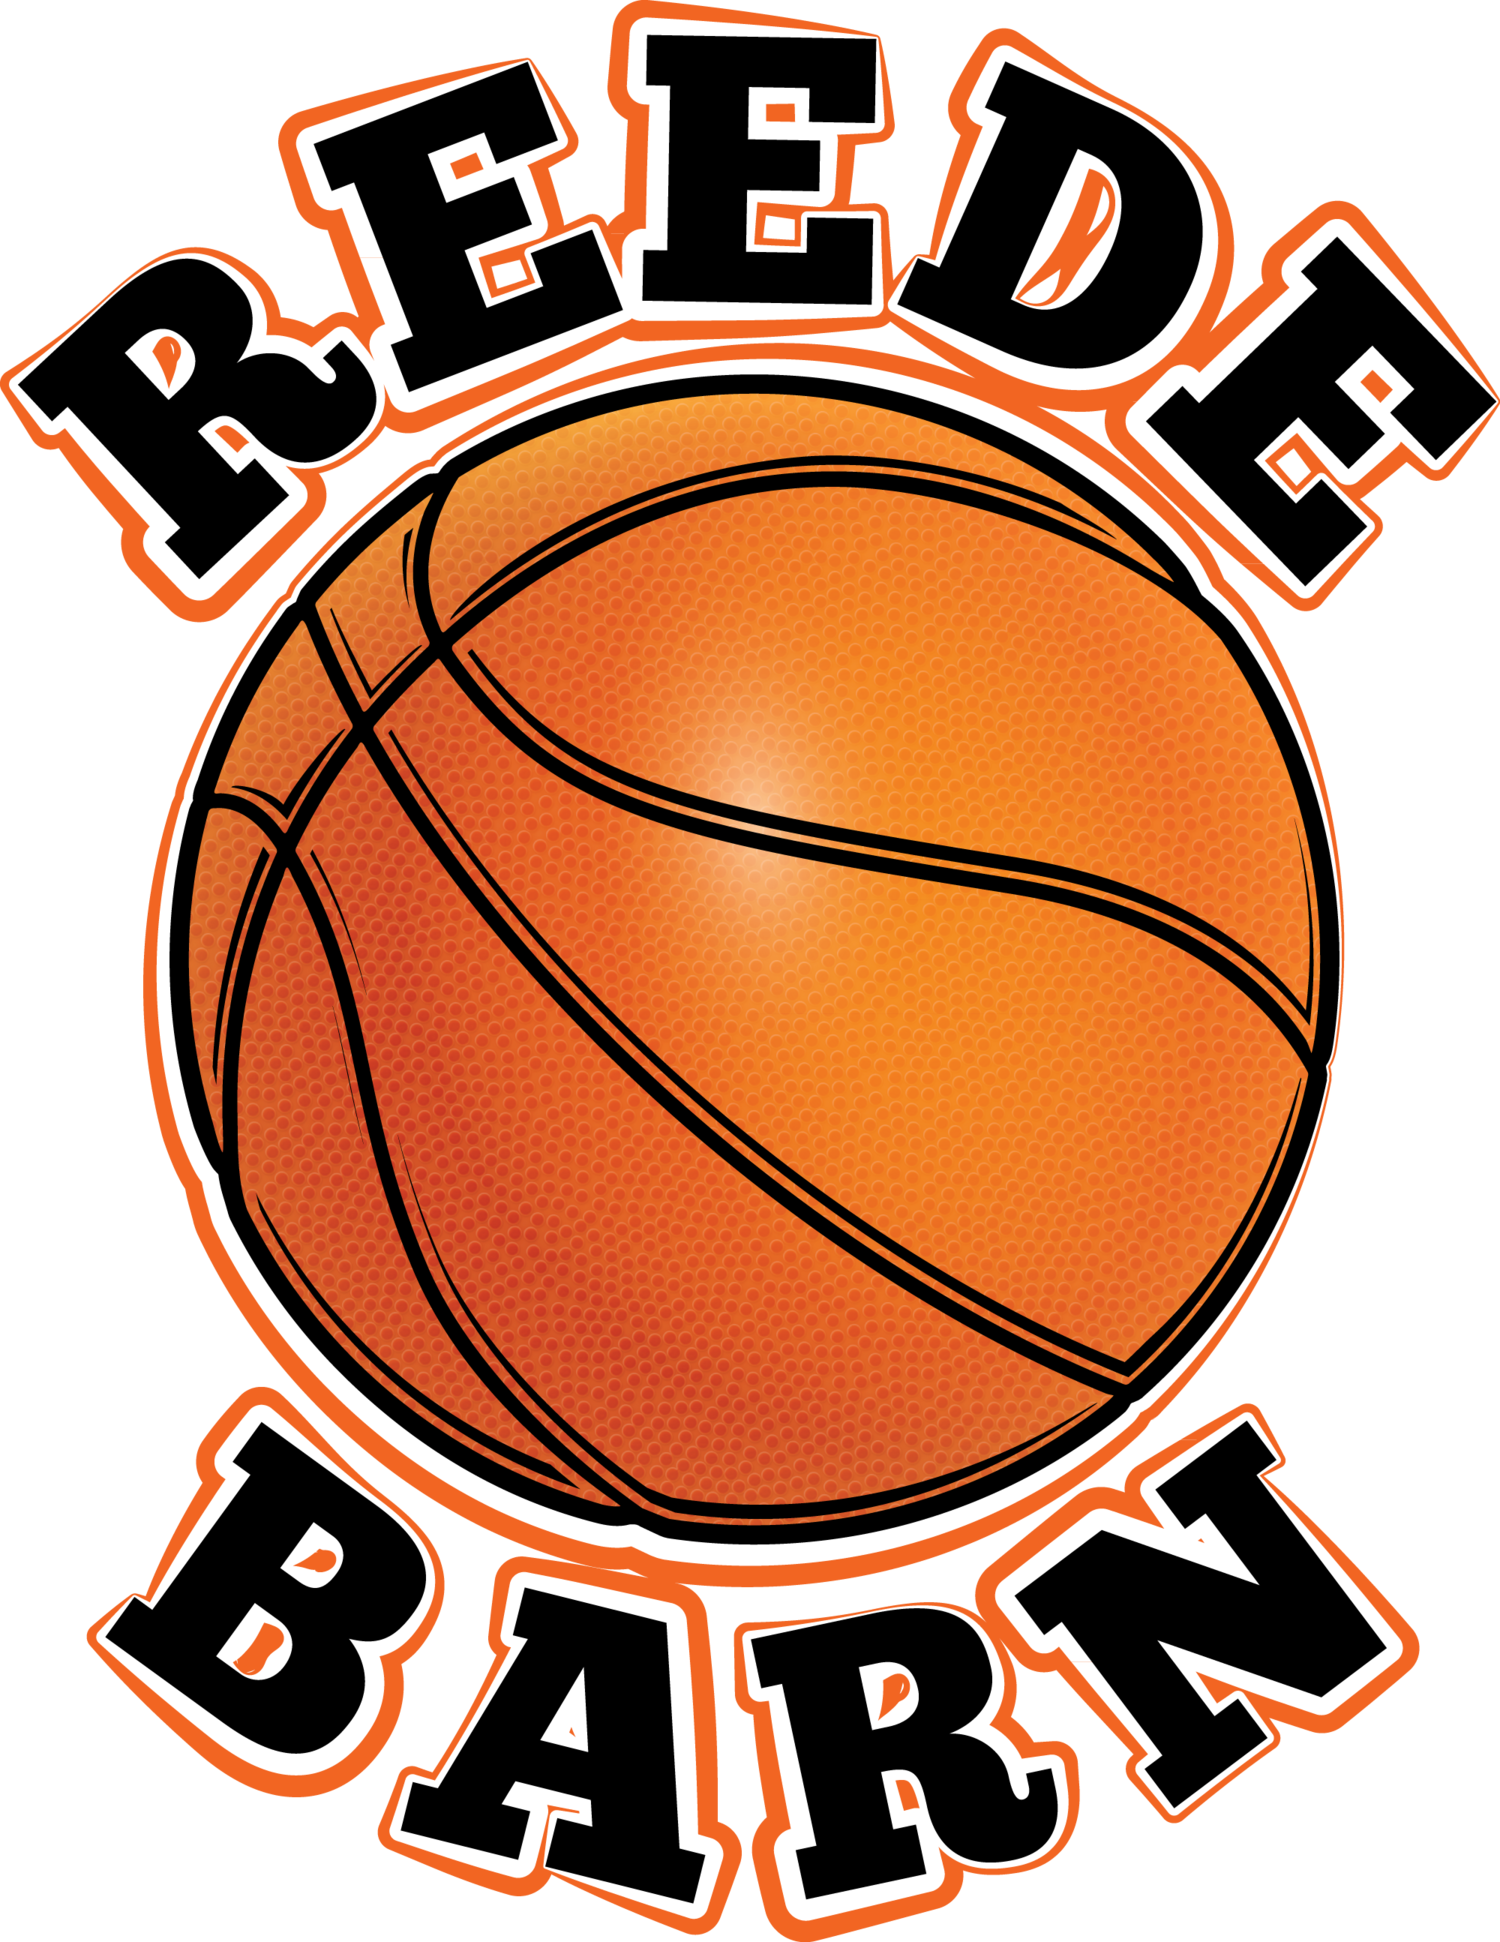 - Three of the seniors on the Roncalli roster played for the Barn-Burner 17-U squad, coached by Allan Bertram.Brady MorganBrandon FauthMax ReedeGray Imbrey, a 6-foot-3 sophomore played on the BarnBurner 15-U team coached by Dolan himself.